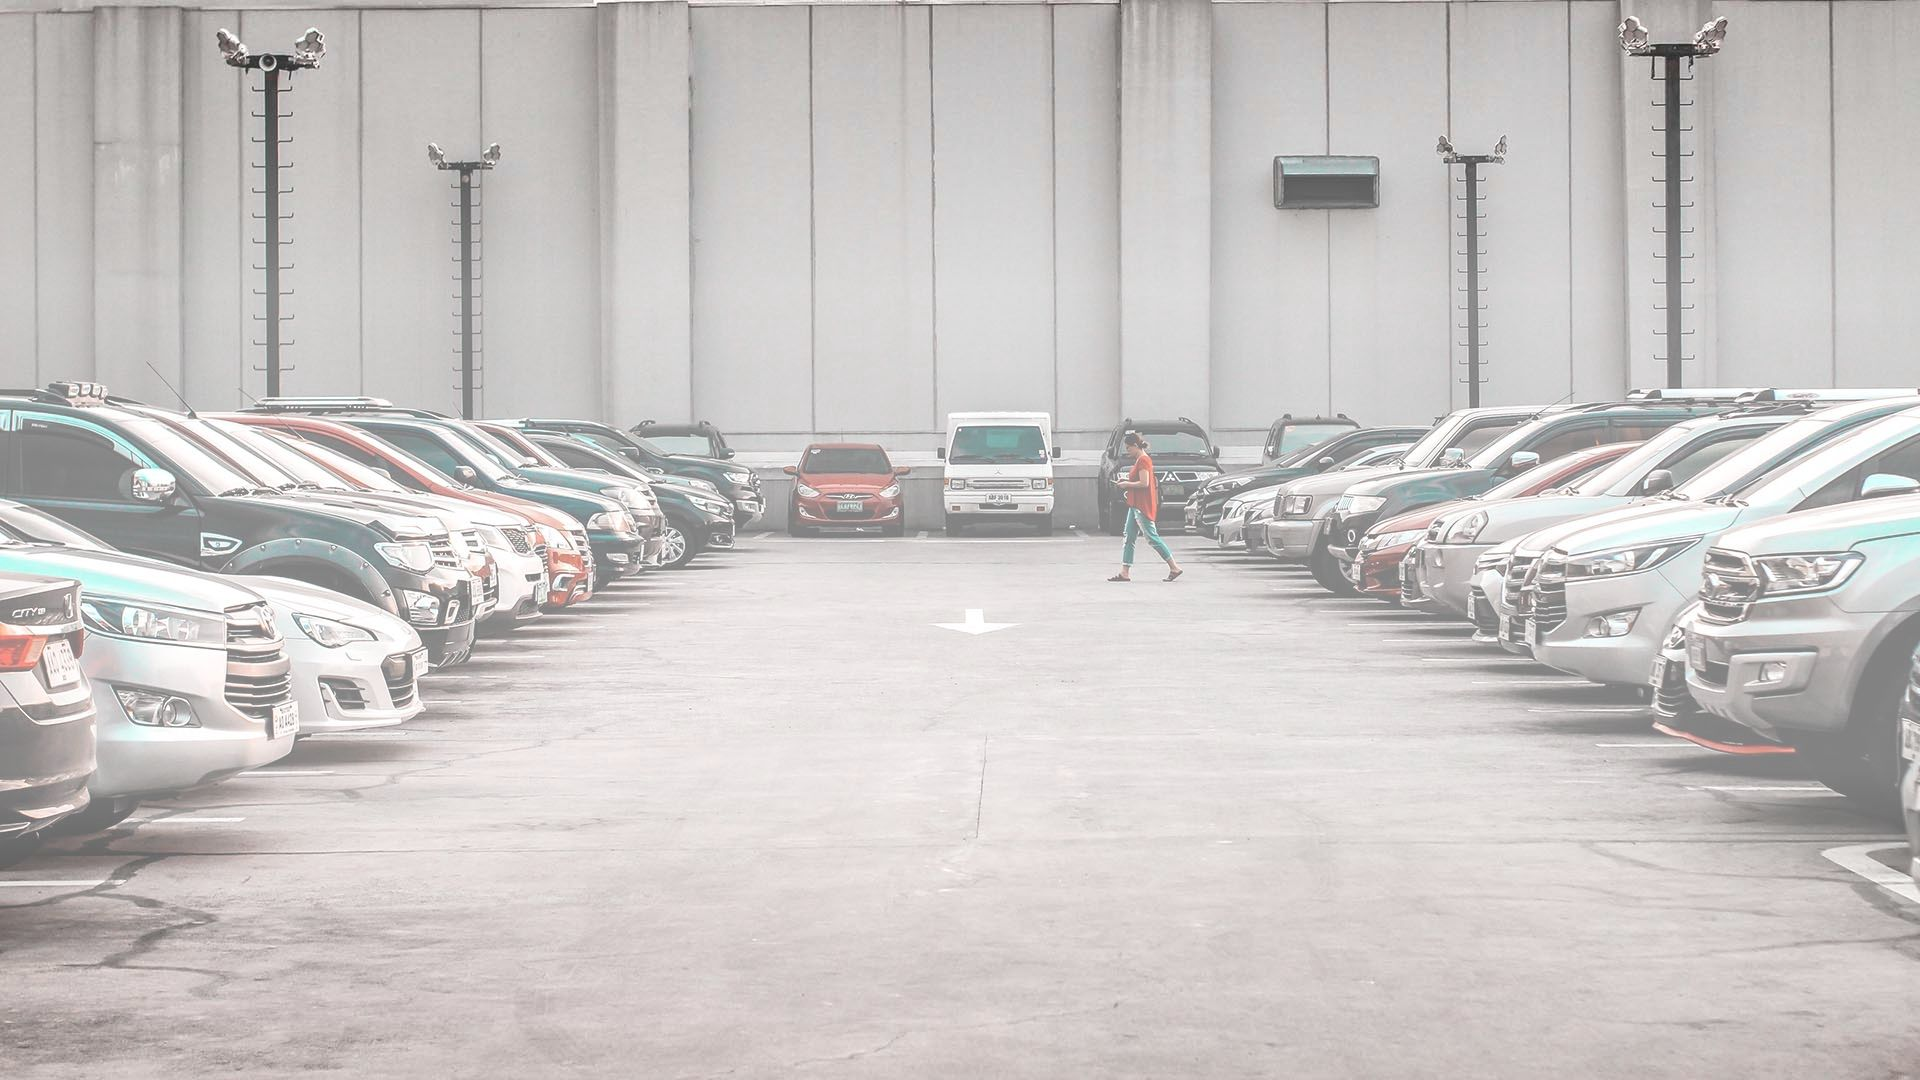 PARKING SOLUTIONS THAT <br>DRIVE VALUE